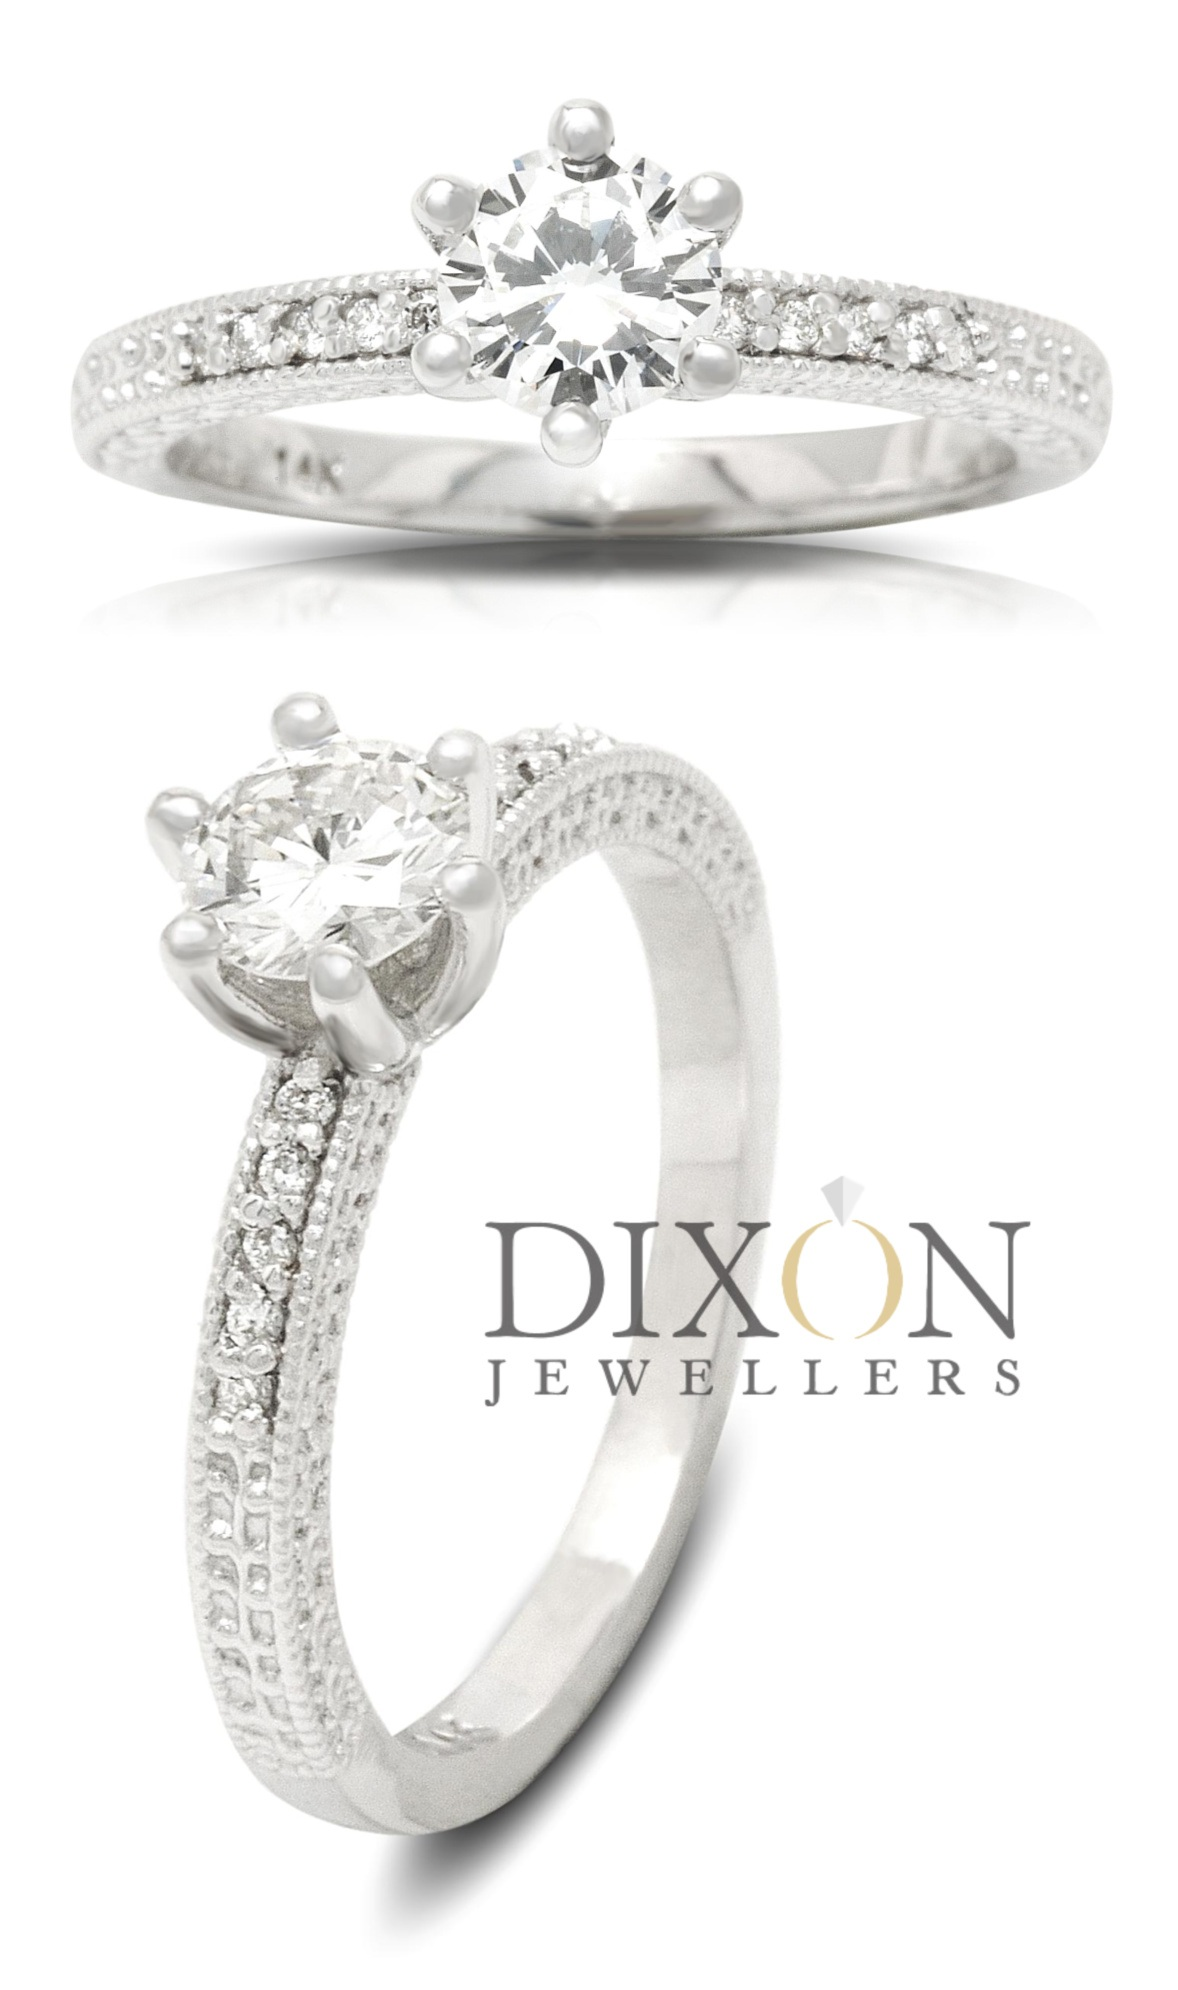 Six Claw Diamond Engagement Ring with Engraved Sides